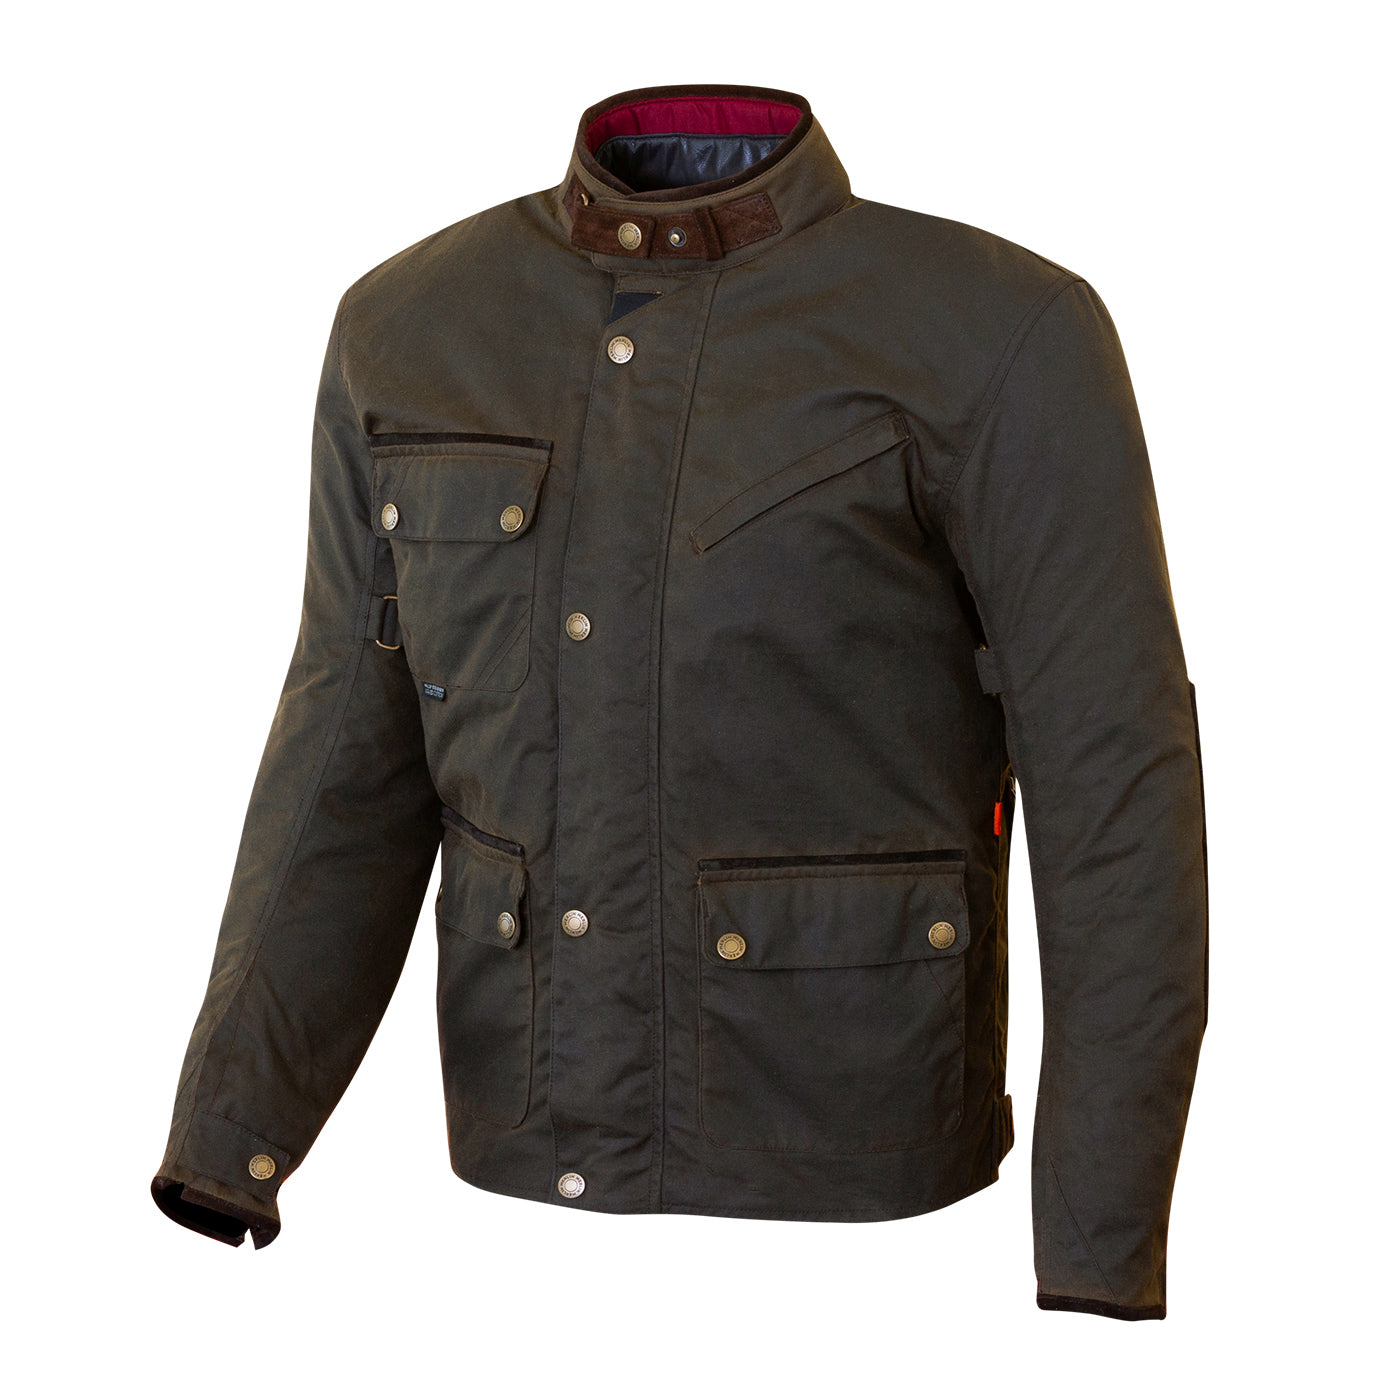 Expedition Waxed Cotton Jacket